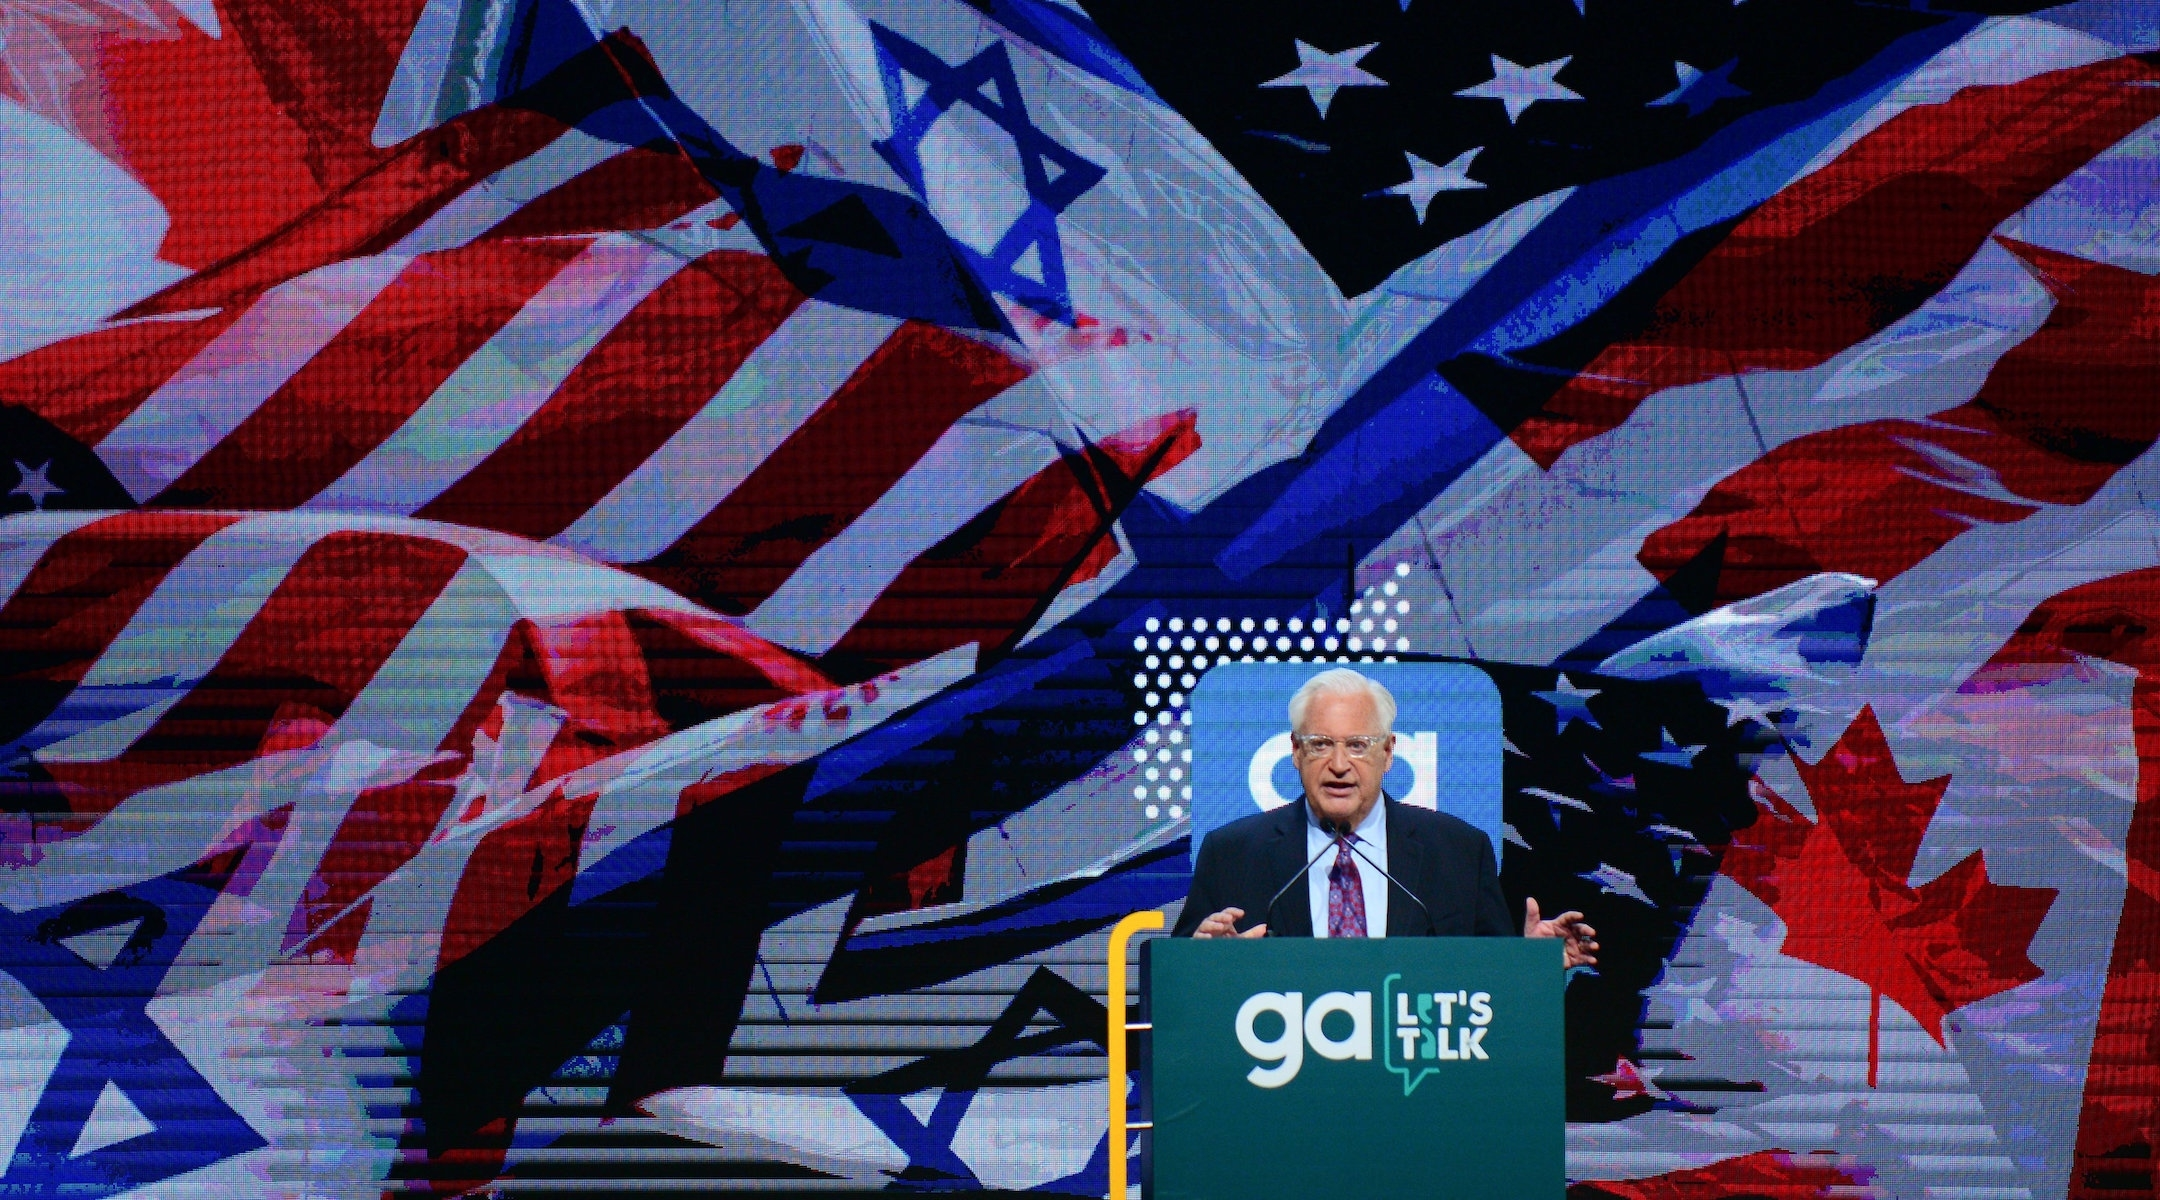 Jewish Federations Plan Invite-Only Conference Instead Of When The Jewish Federation Of Chicago Will Be Close For Holidays In 2020